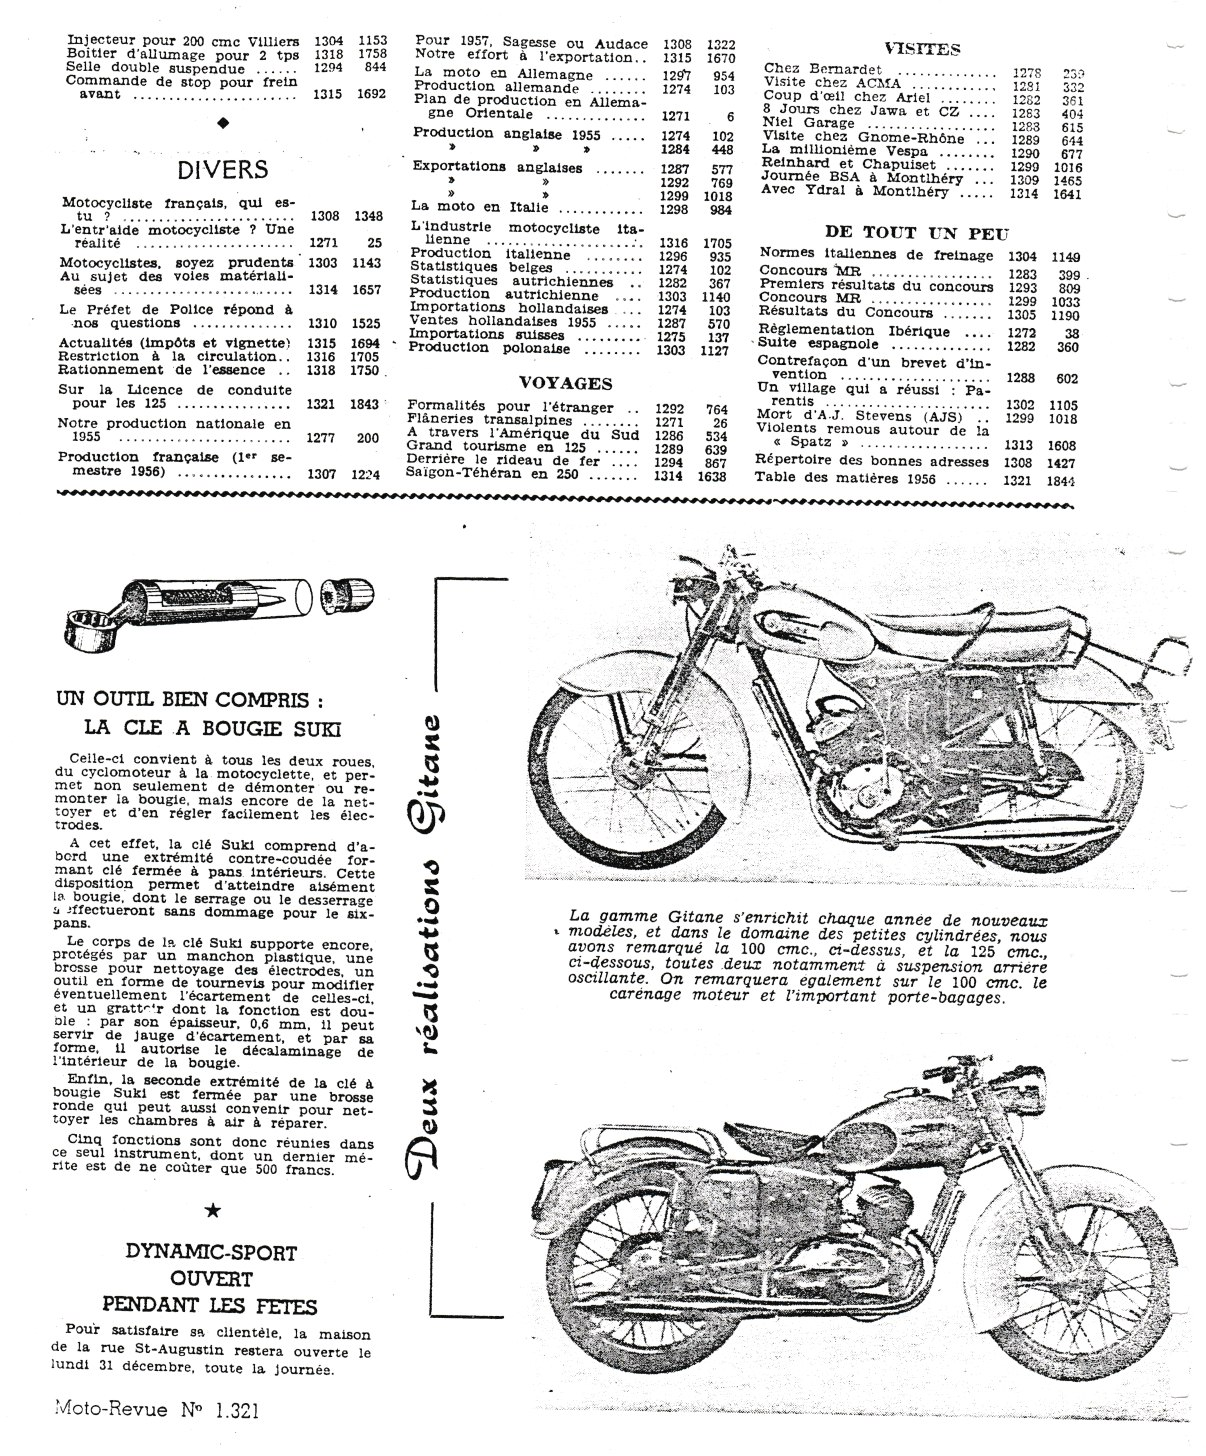 75 1956 page 4.jpg